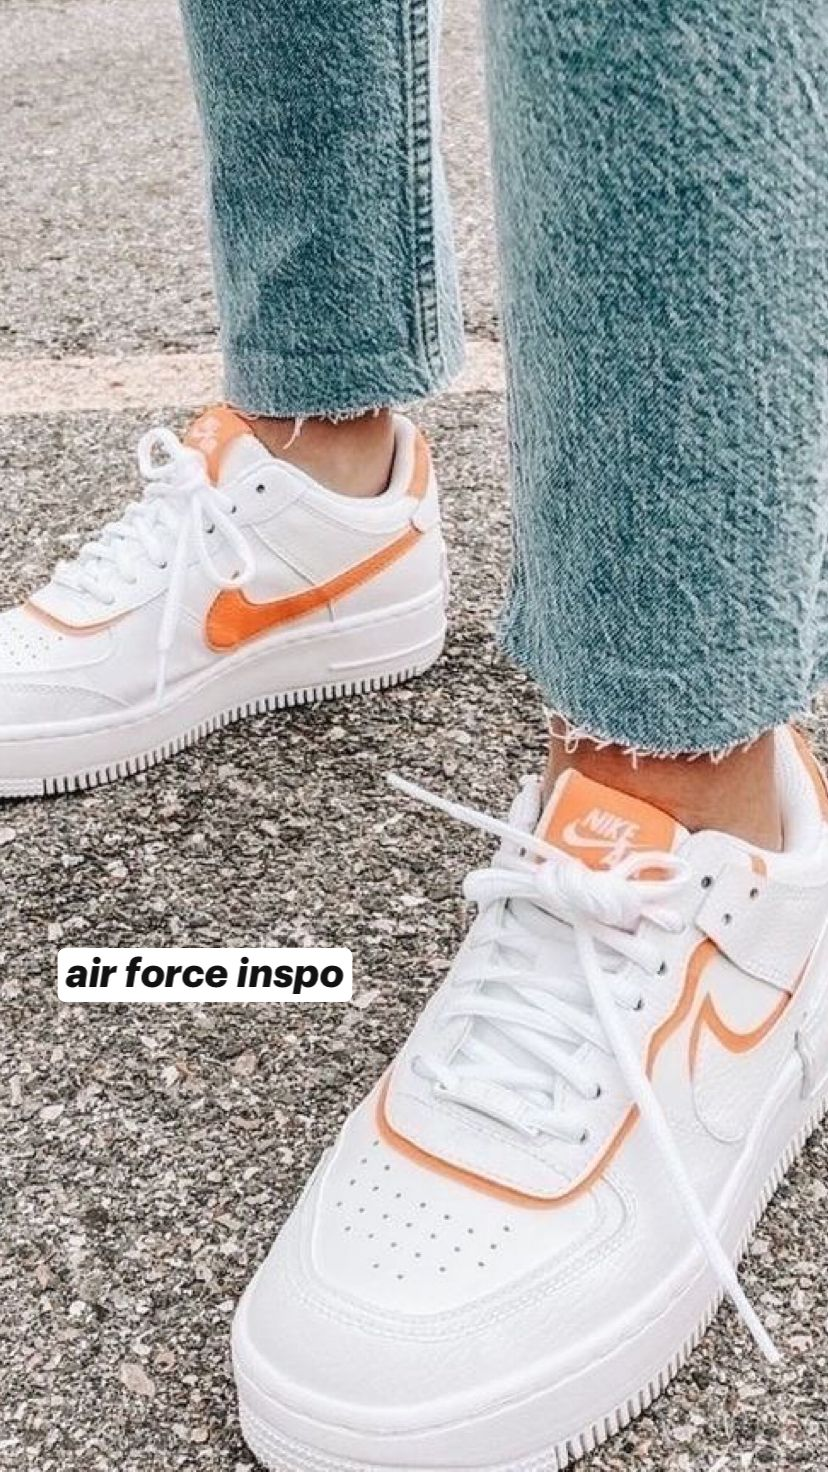 air force inspo